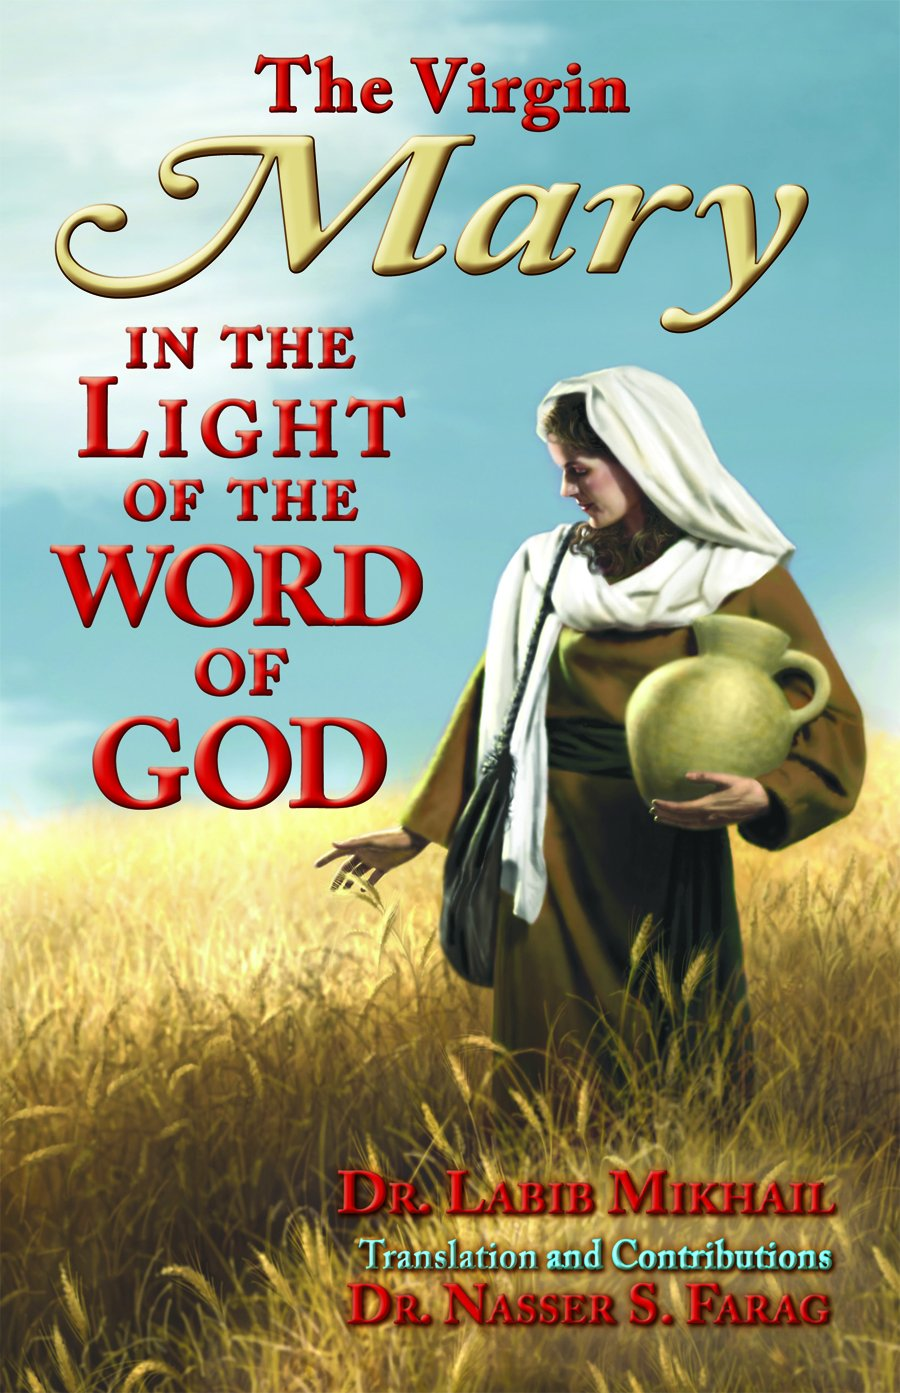 The Virgin Mary in the Light of the Word of God